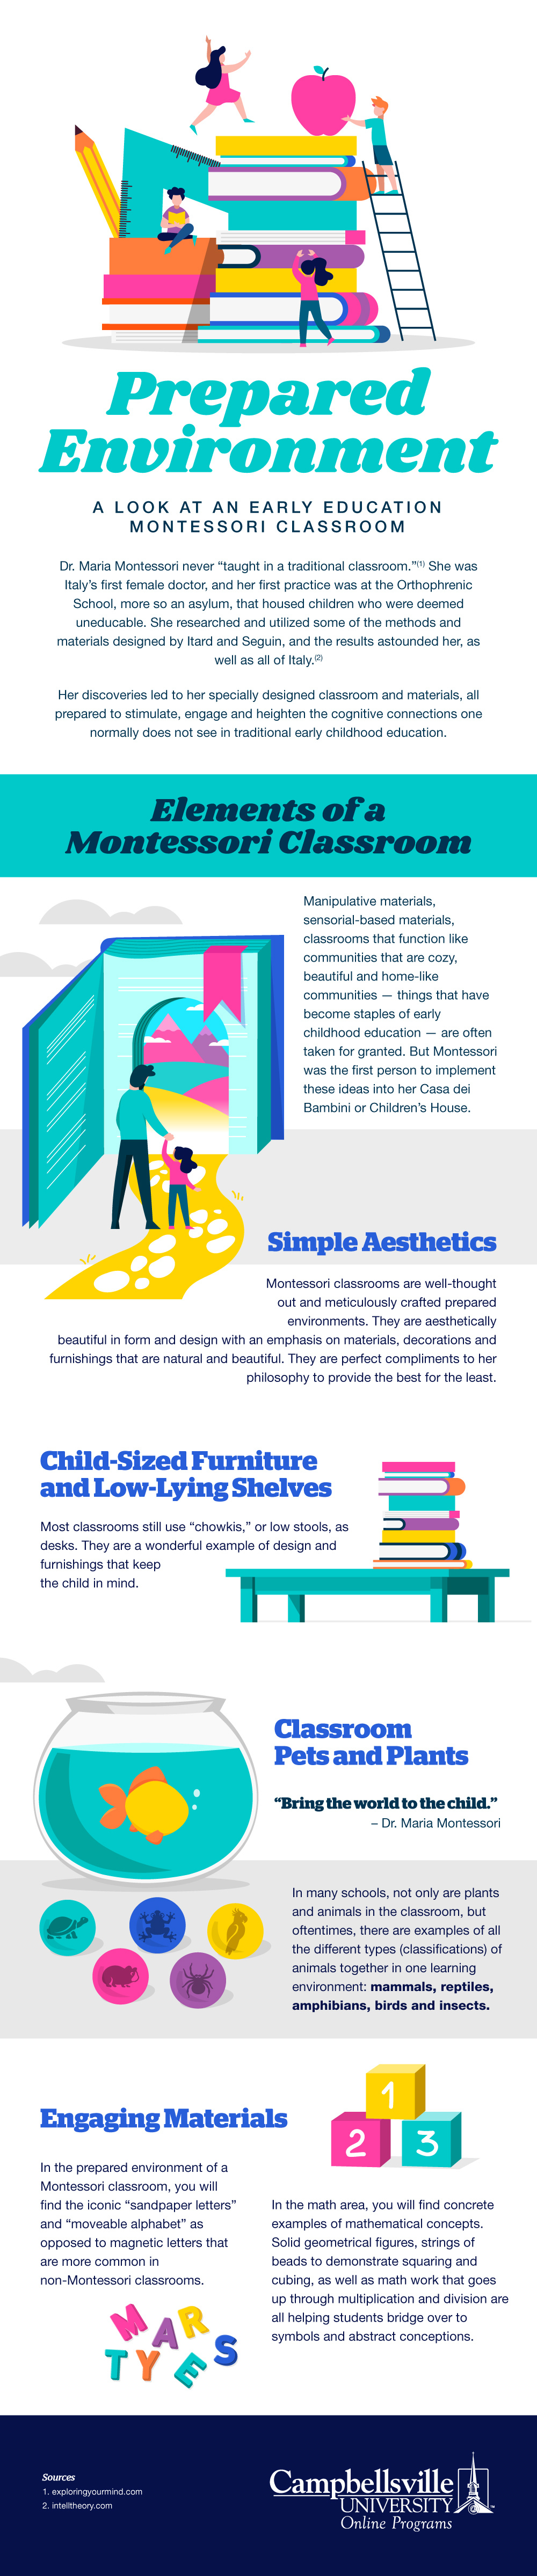 Illustrated infographic describing best practices in Montessori classroom design.